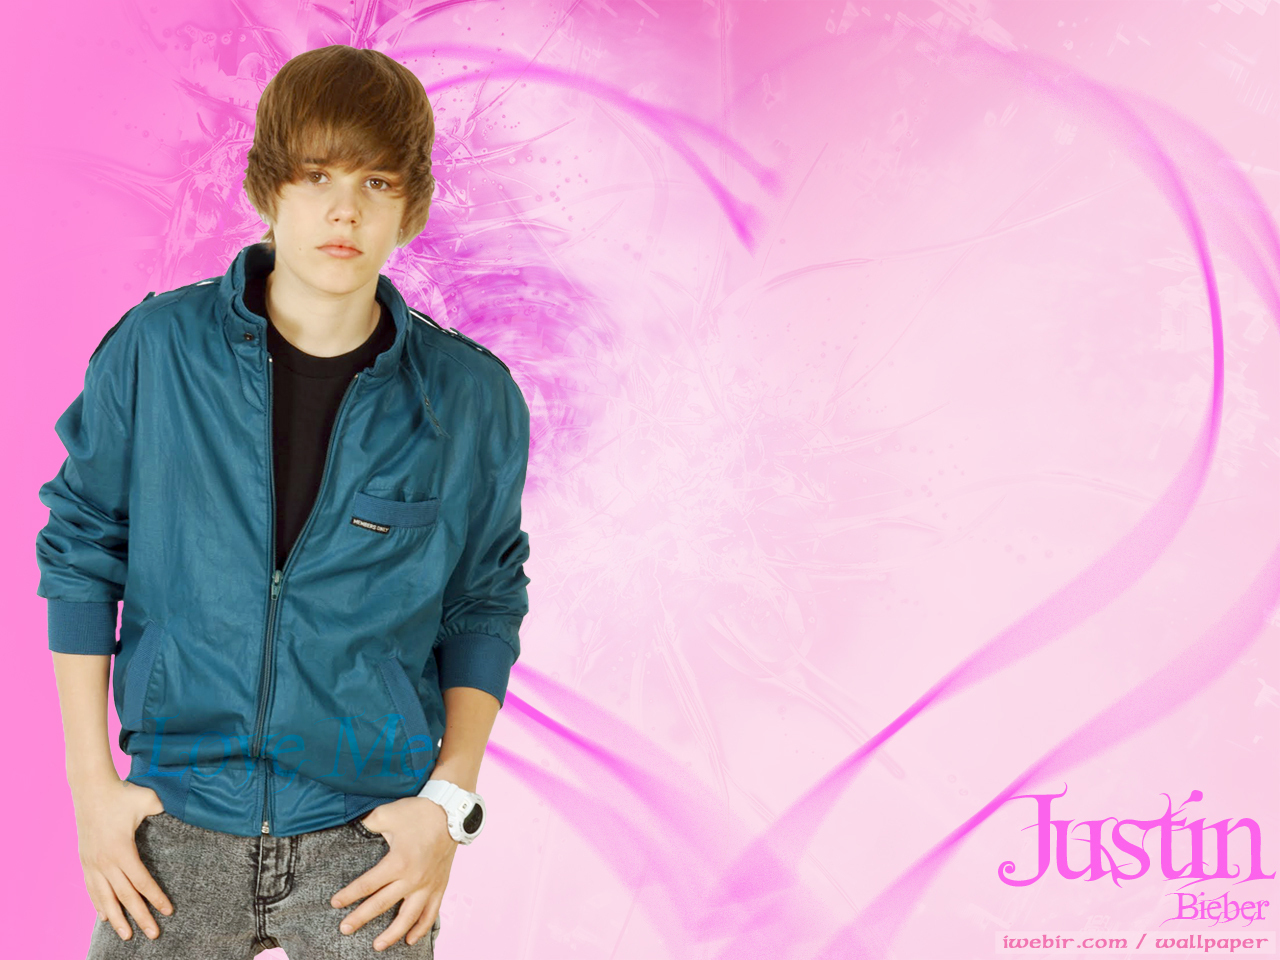 Justin Bieber Images Justin Bieber 2010 Hot Wallpapers